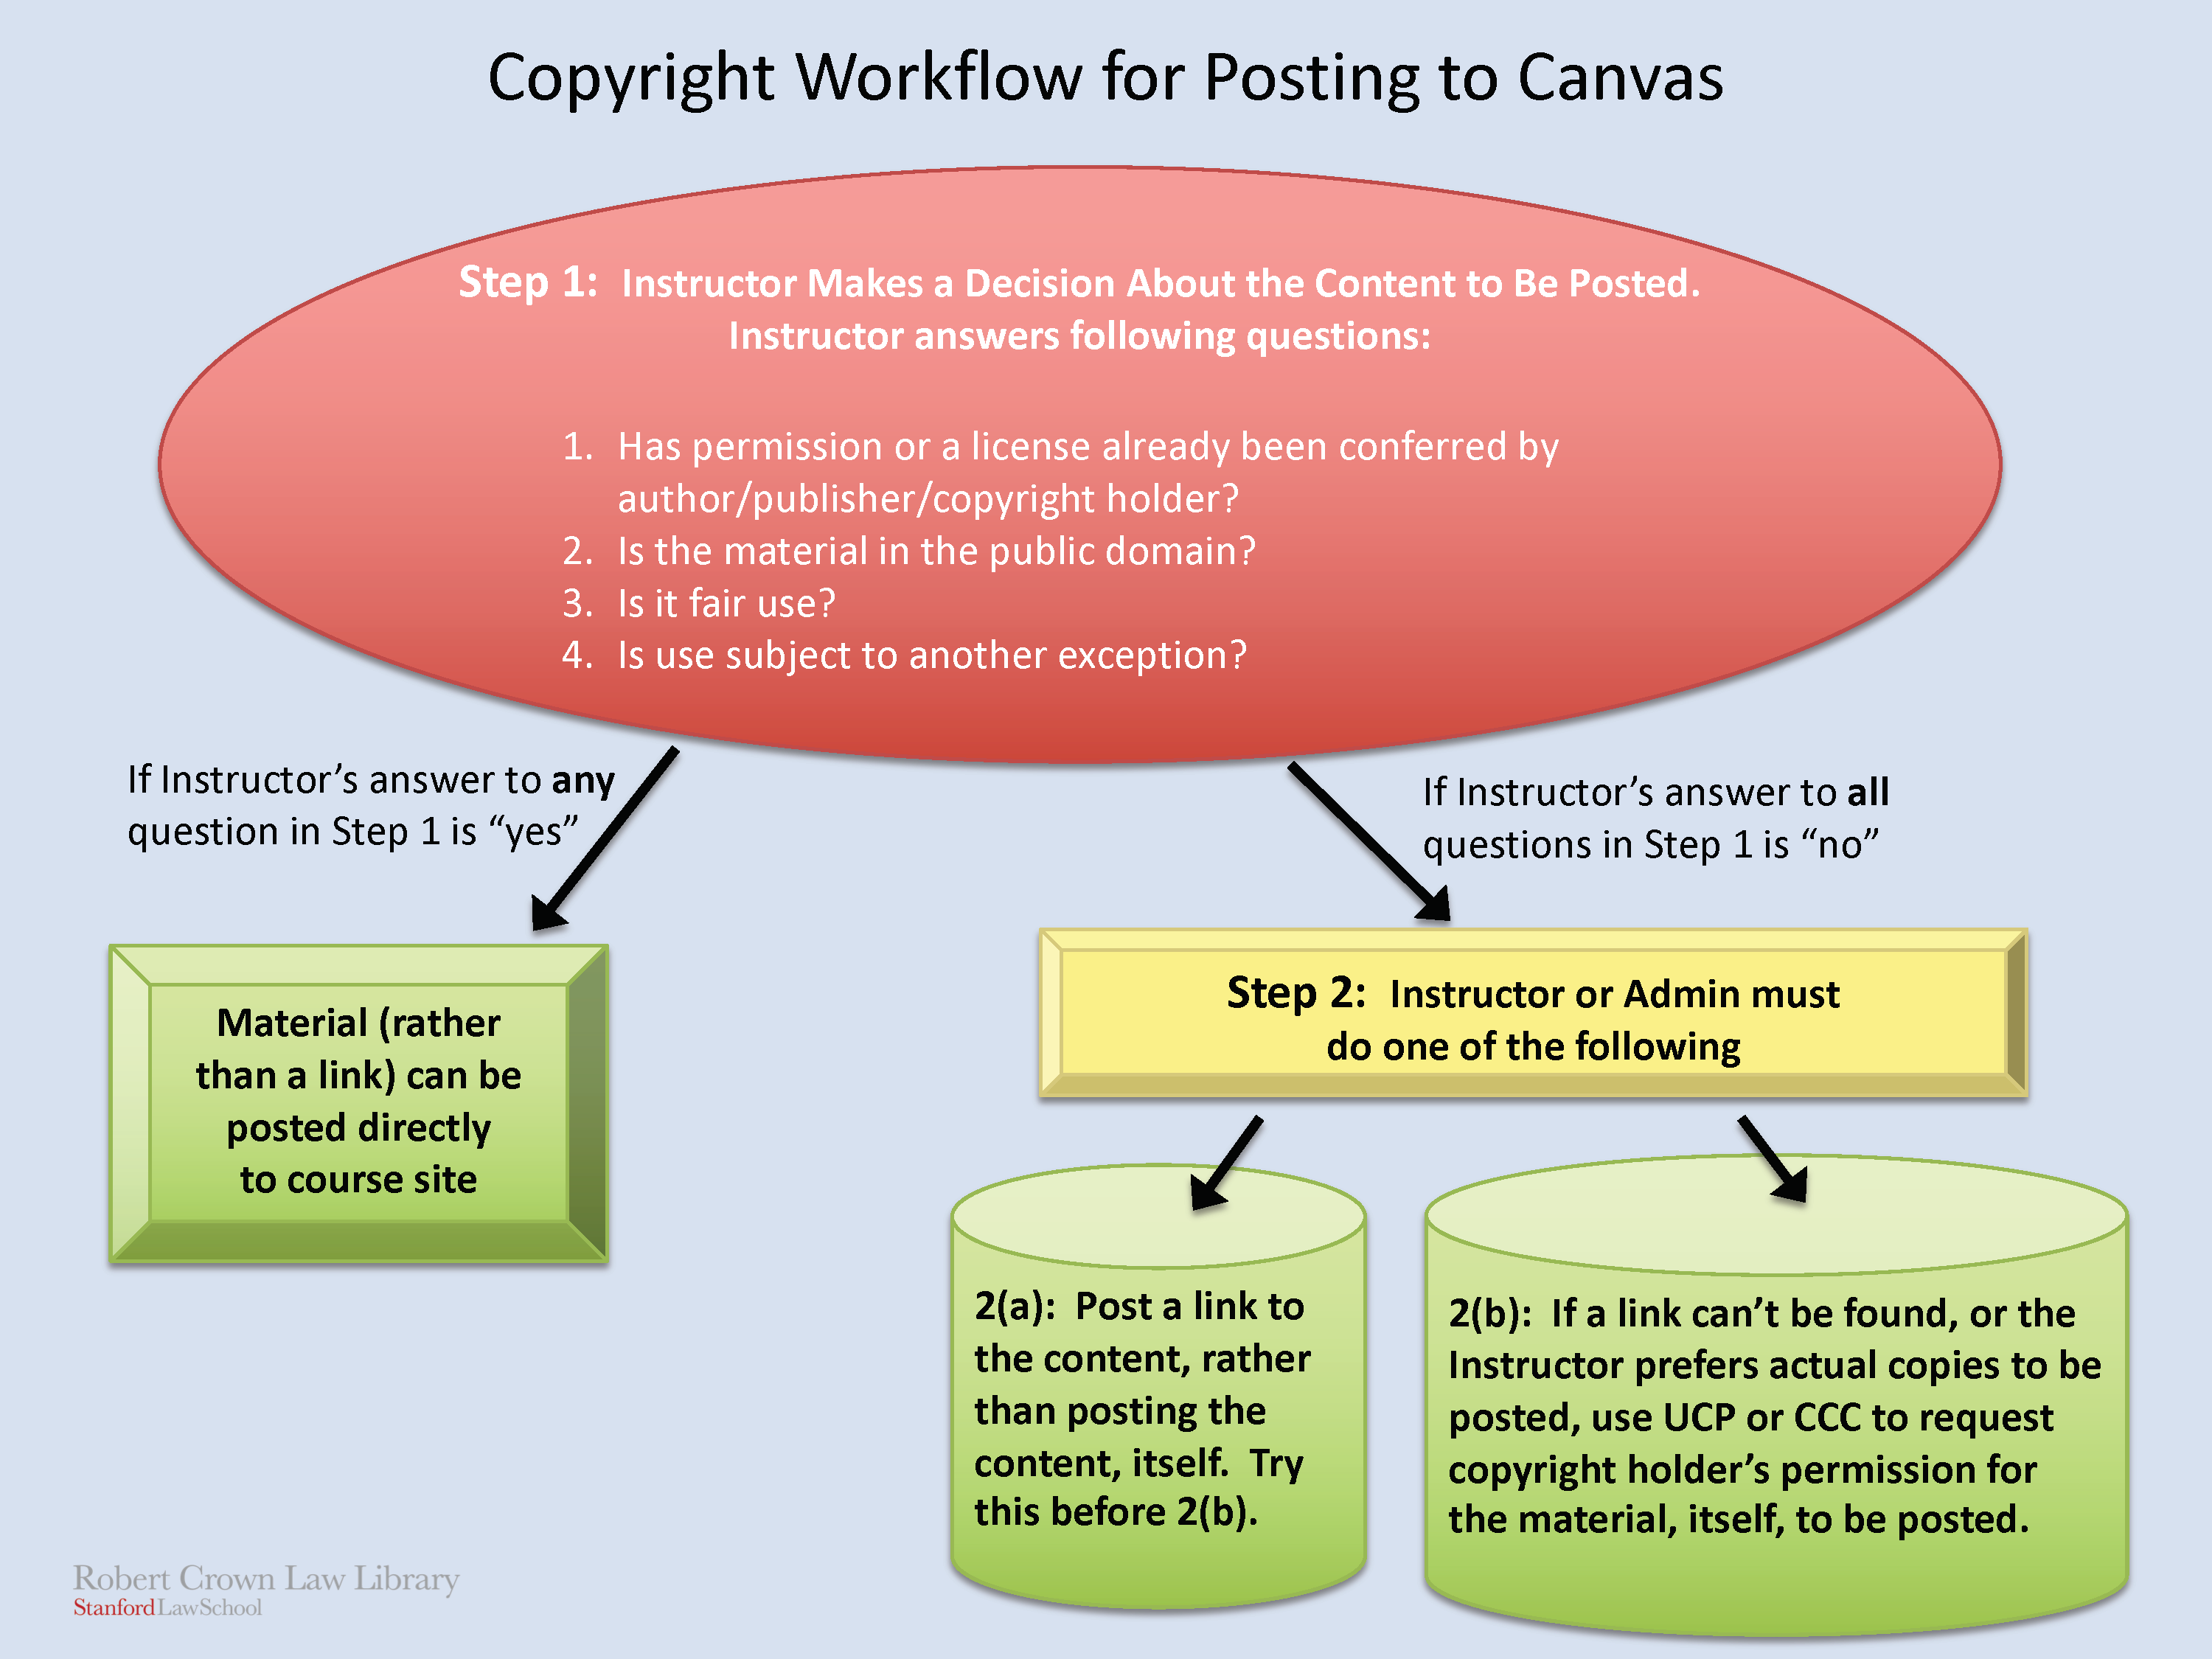 Copyright workflow for posting materials to Canvas